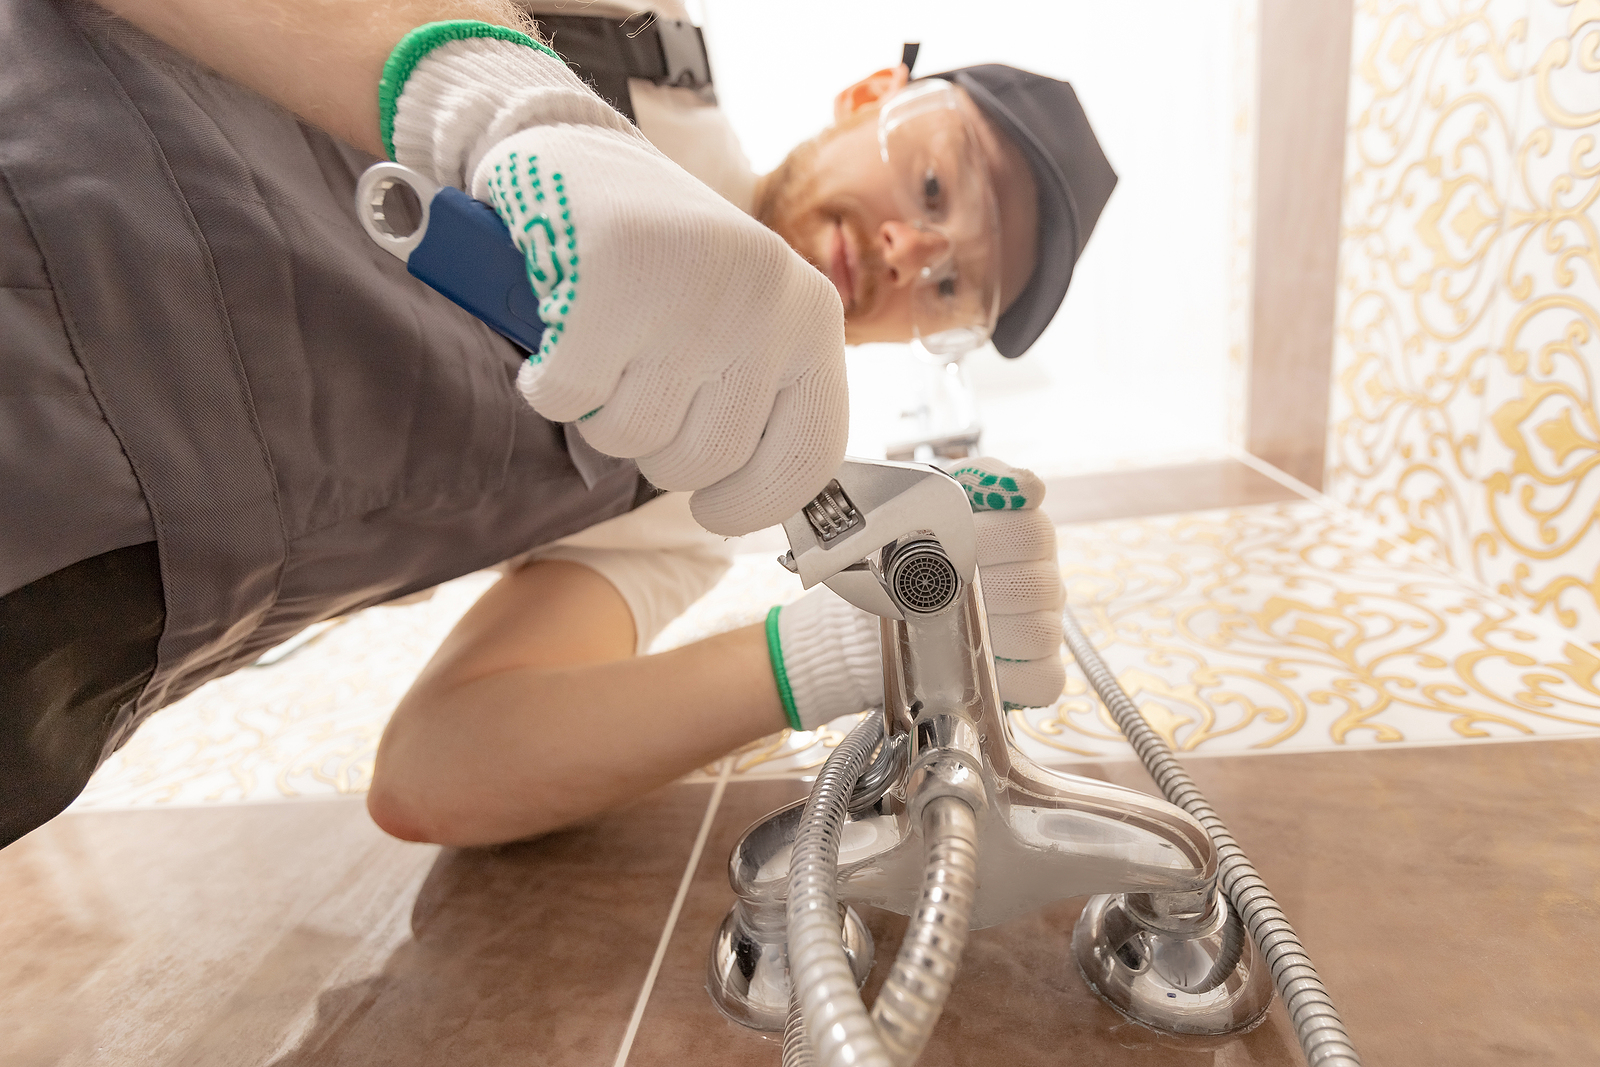 Professional Canberra plumber installing a shower stall